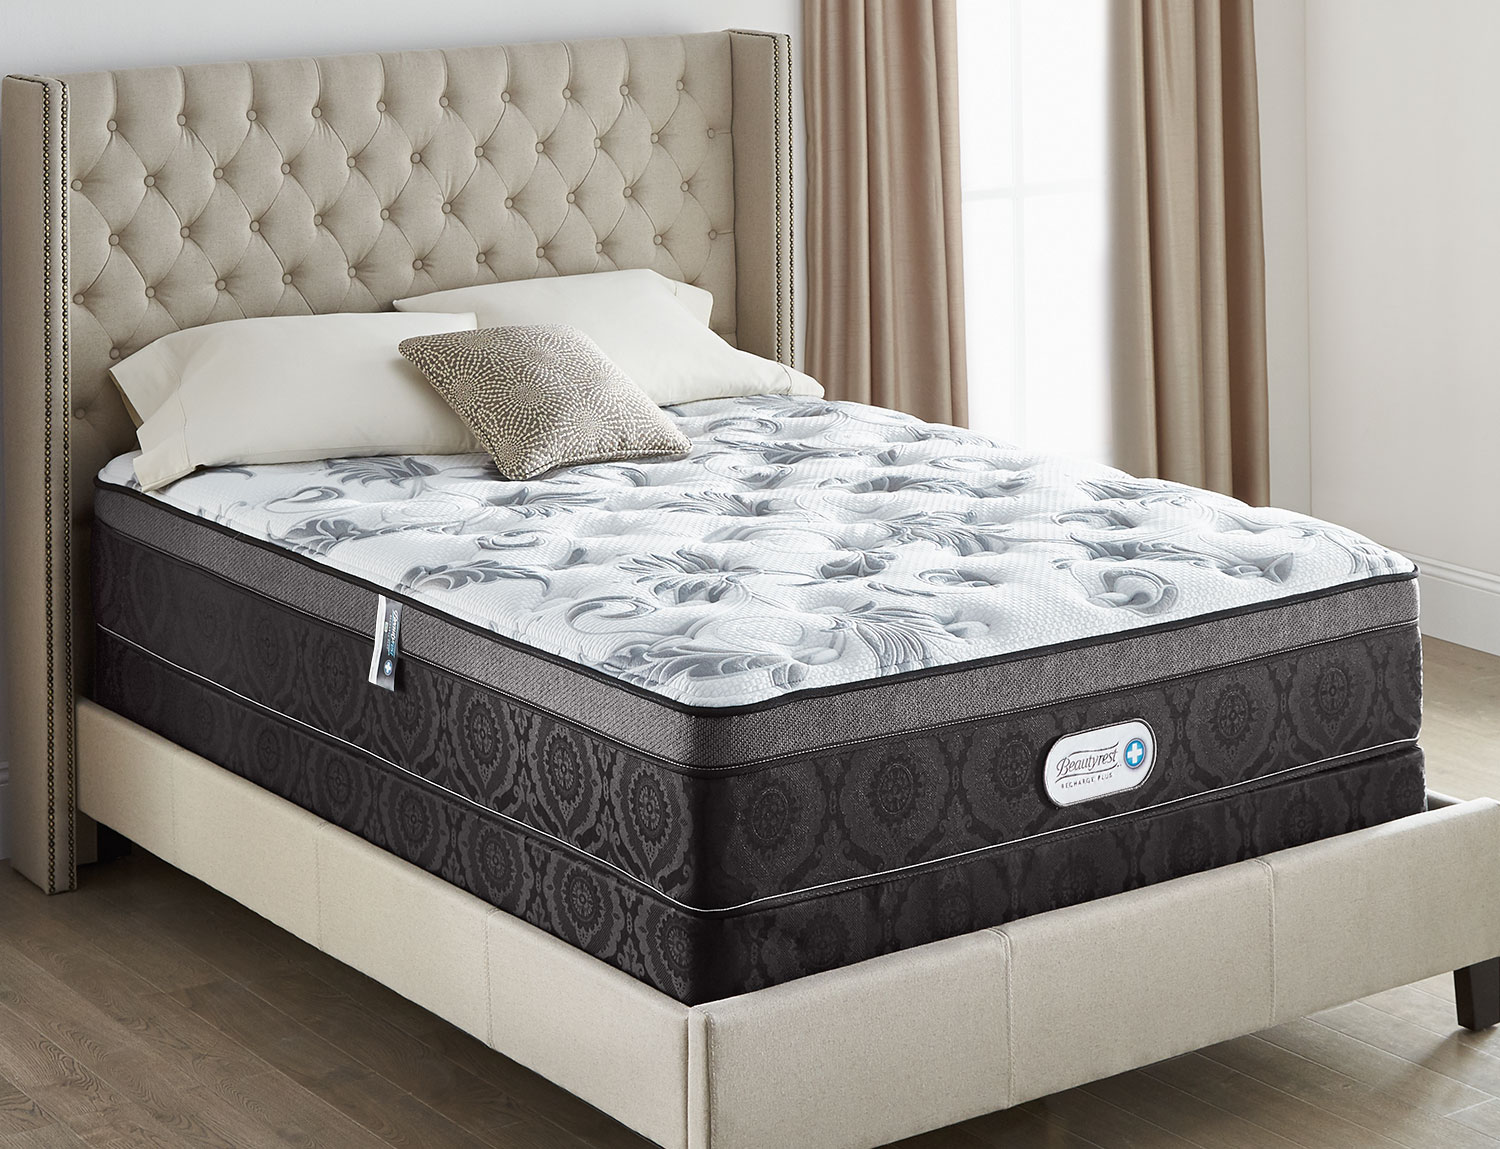 Beautyrest® Recharge Plus Allure Ultra Euro-Top Queen Mattress Set